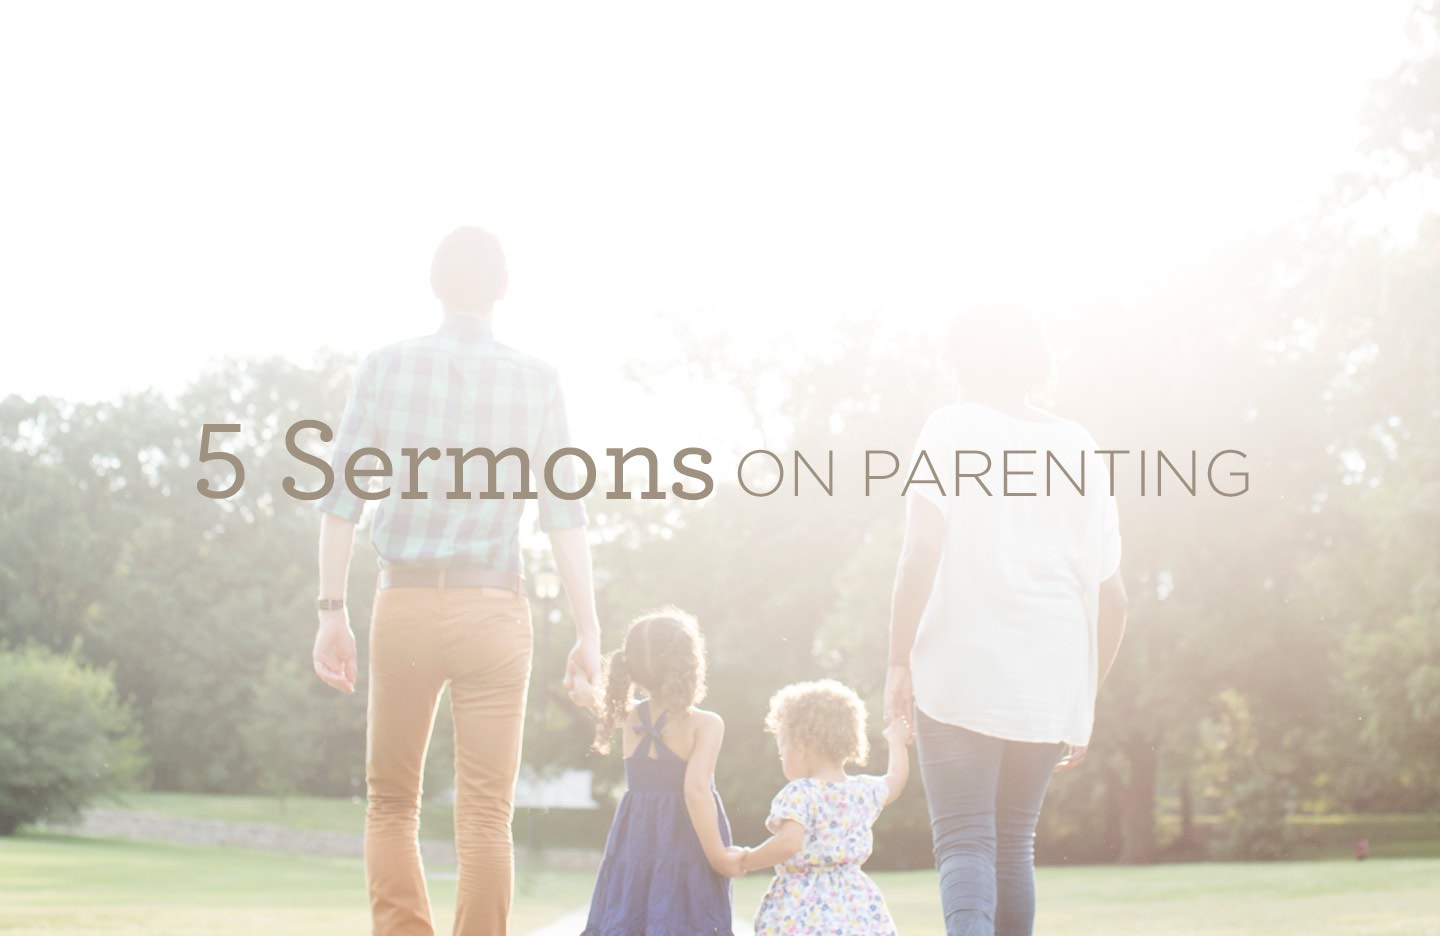 thumbnail image for Sermons on Parenting